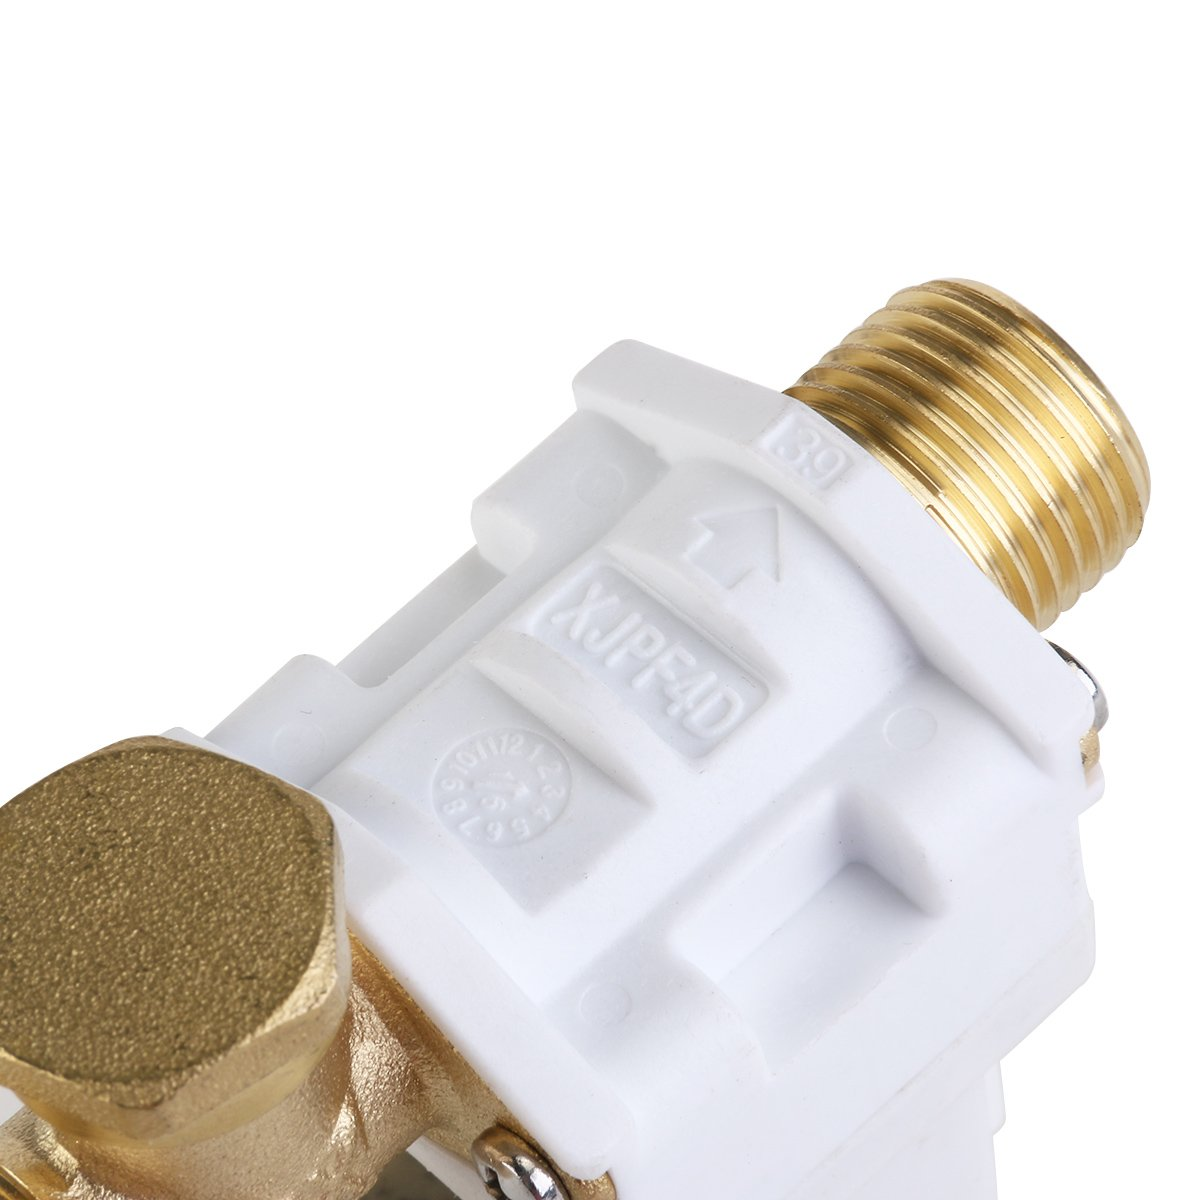 3//8inch 12VDC Hose Barb Electric Solenoid Valve Plastic Body 12-volt DC for Automatic Faucets Drinking Fountains-no Pressure,white /& black R TOOGOO